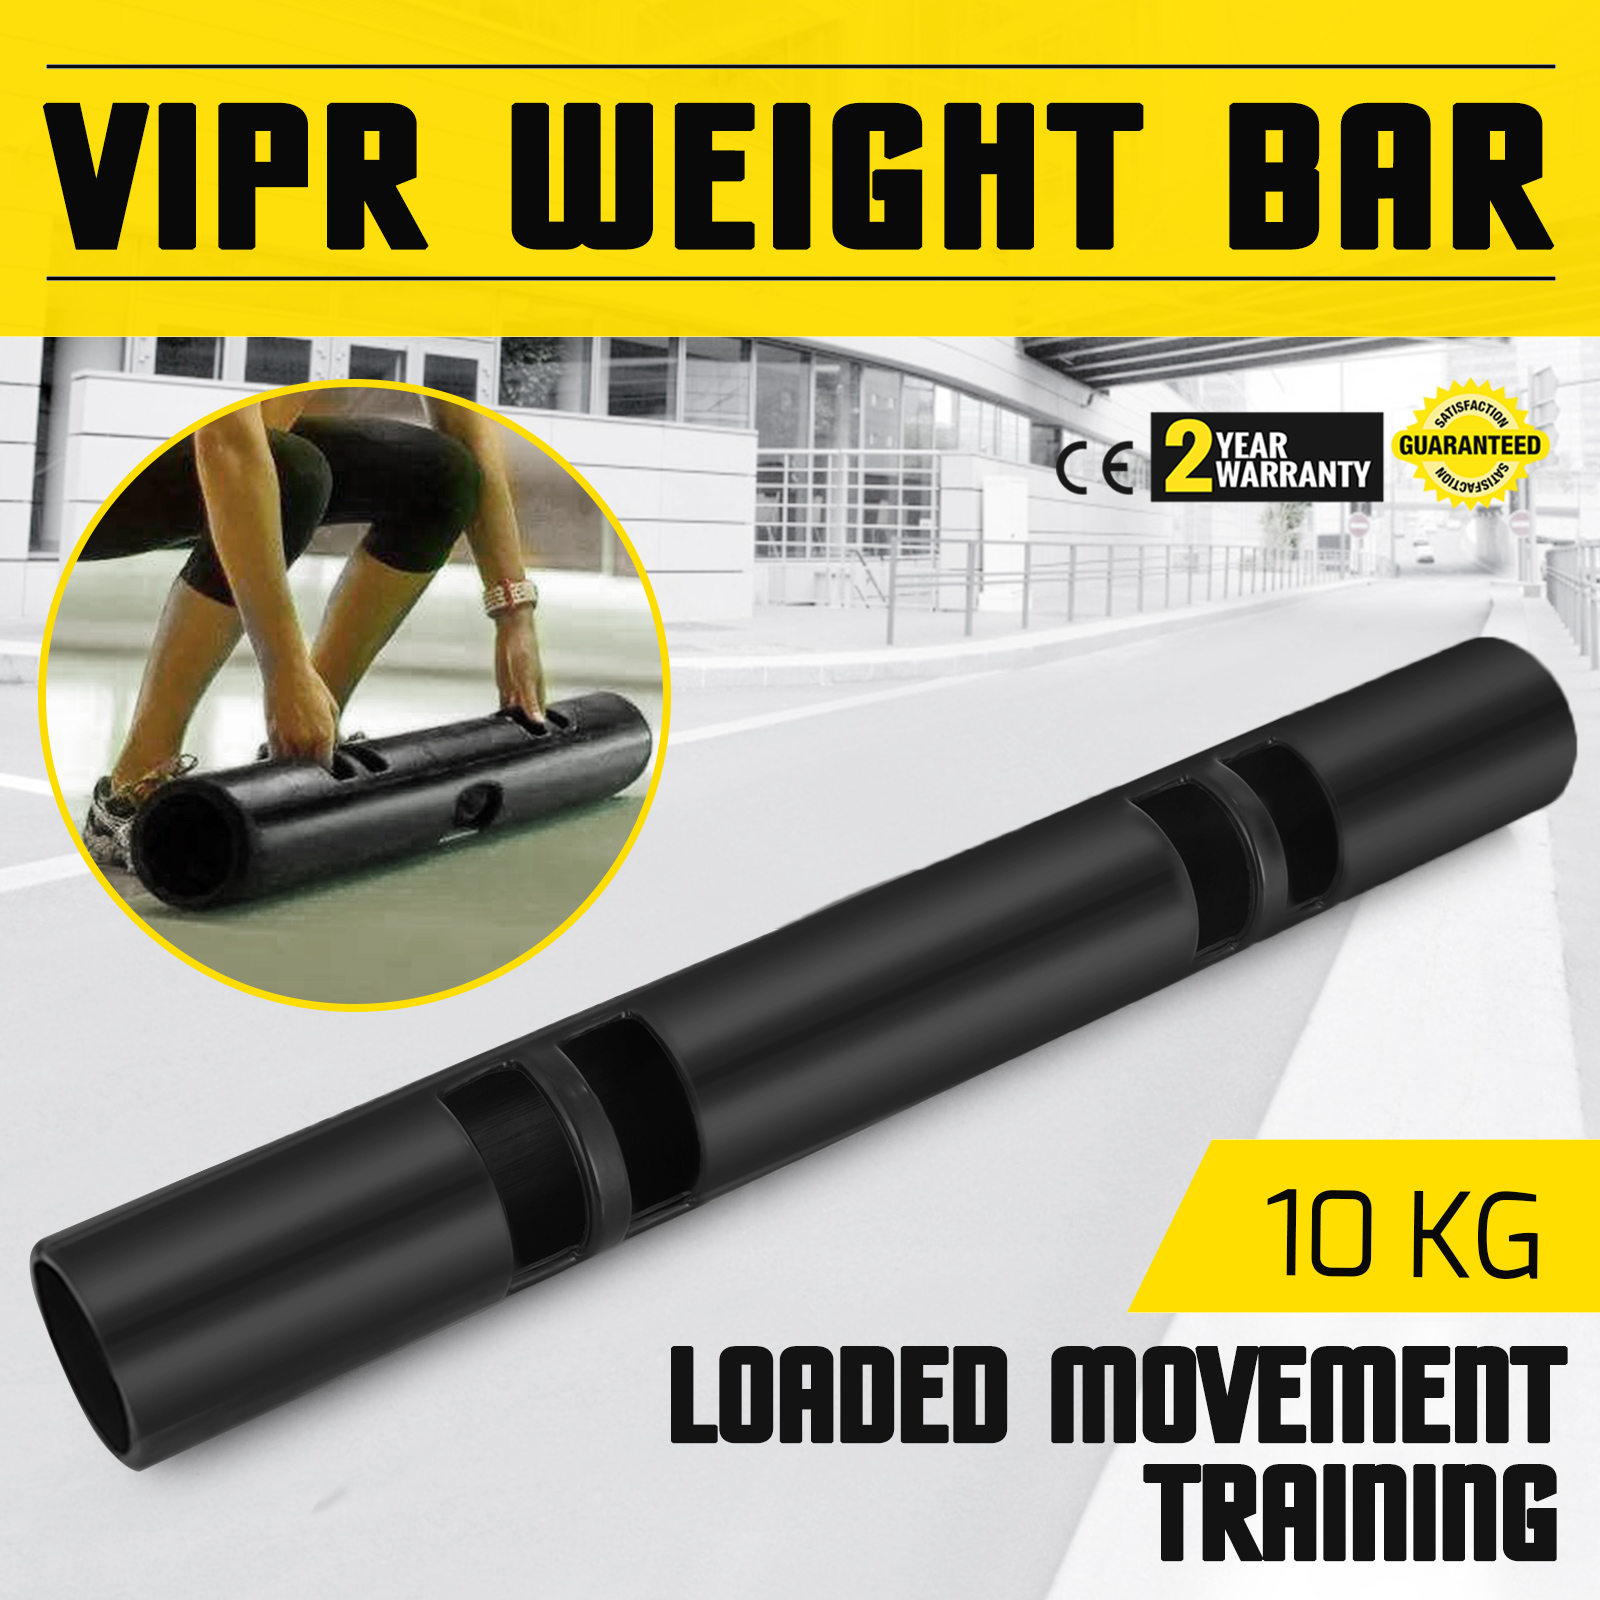 Vipr-Fitpro-Fitness-Tube-Loaded-Movement-Training-weightlifting-4-6-8-10-12-Kg thumbnail 49